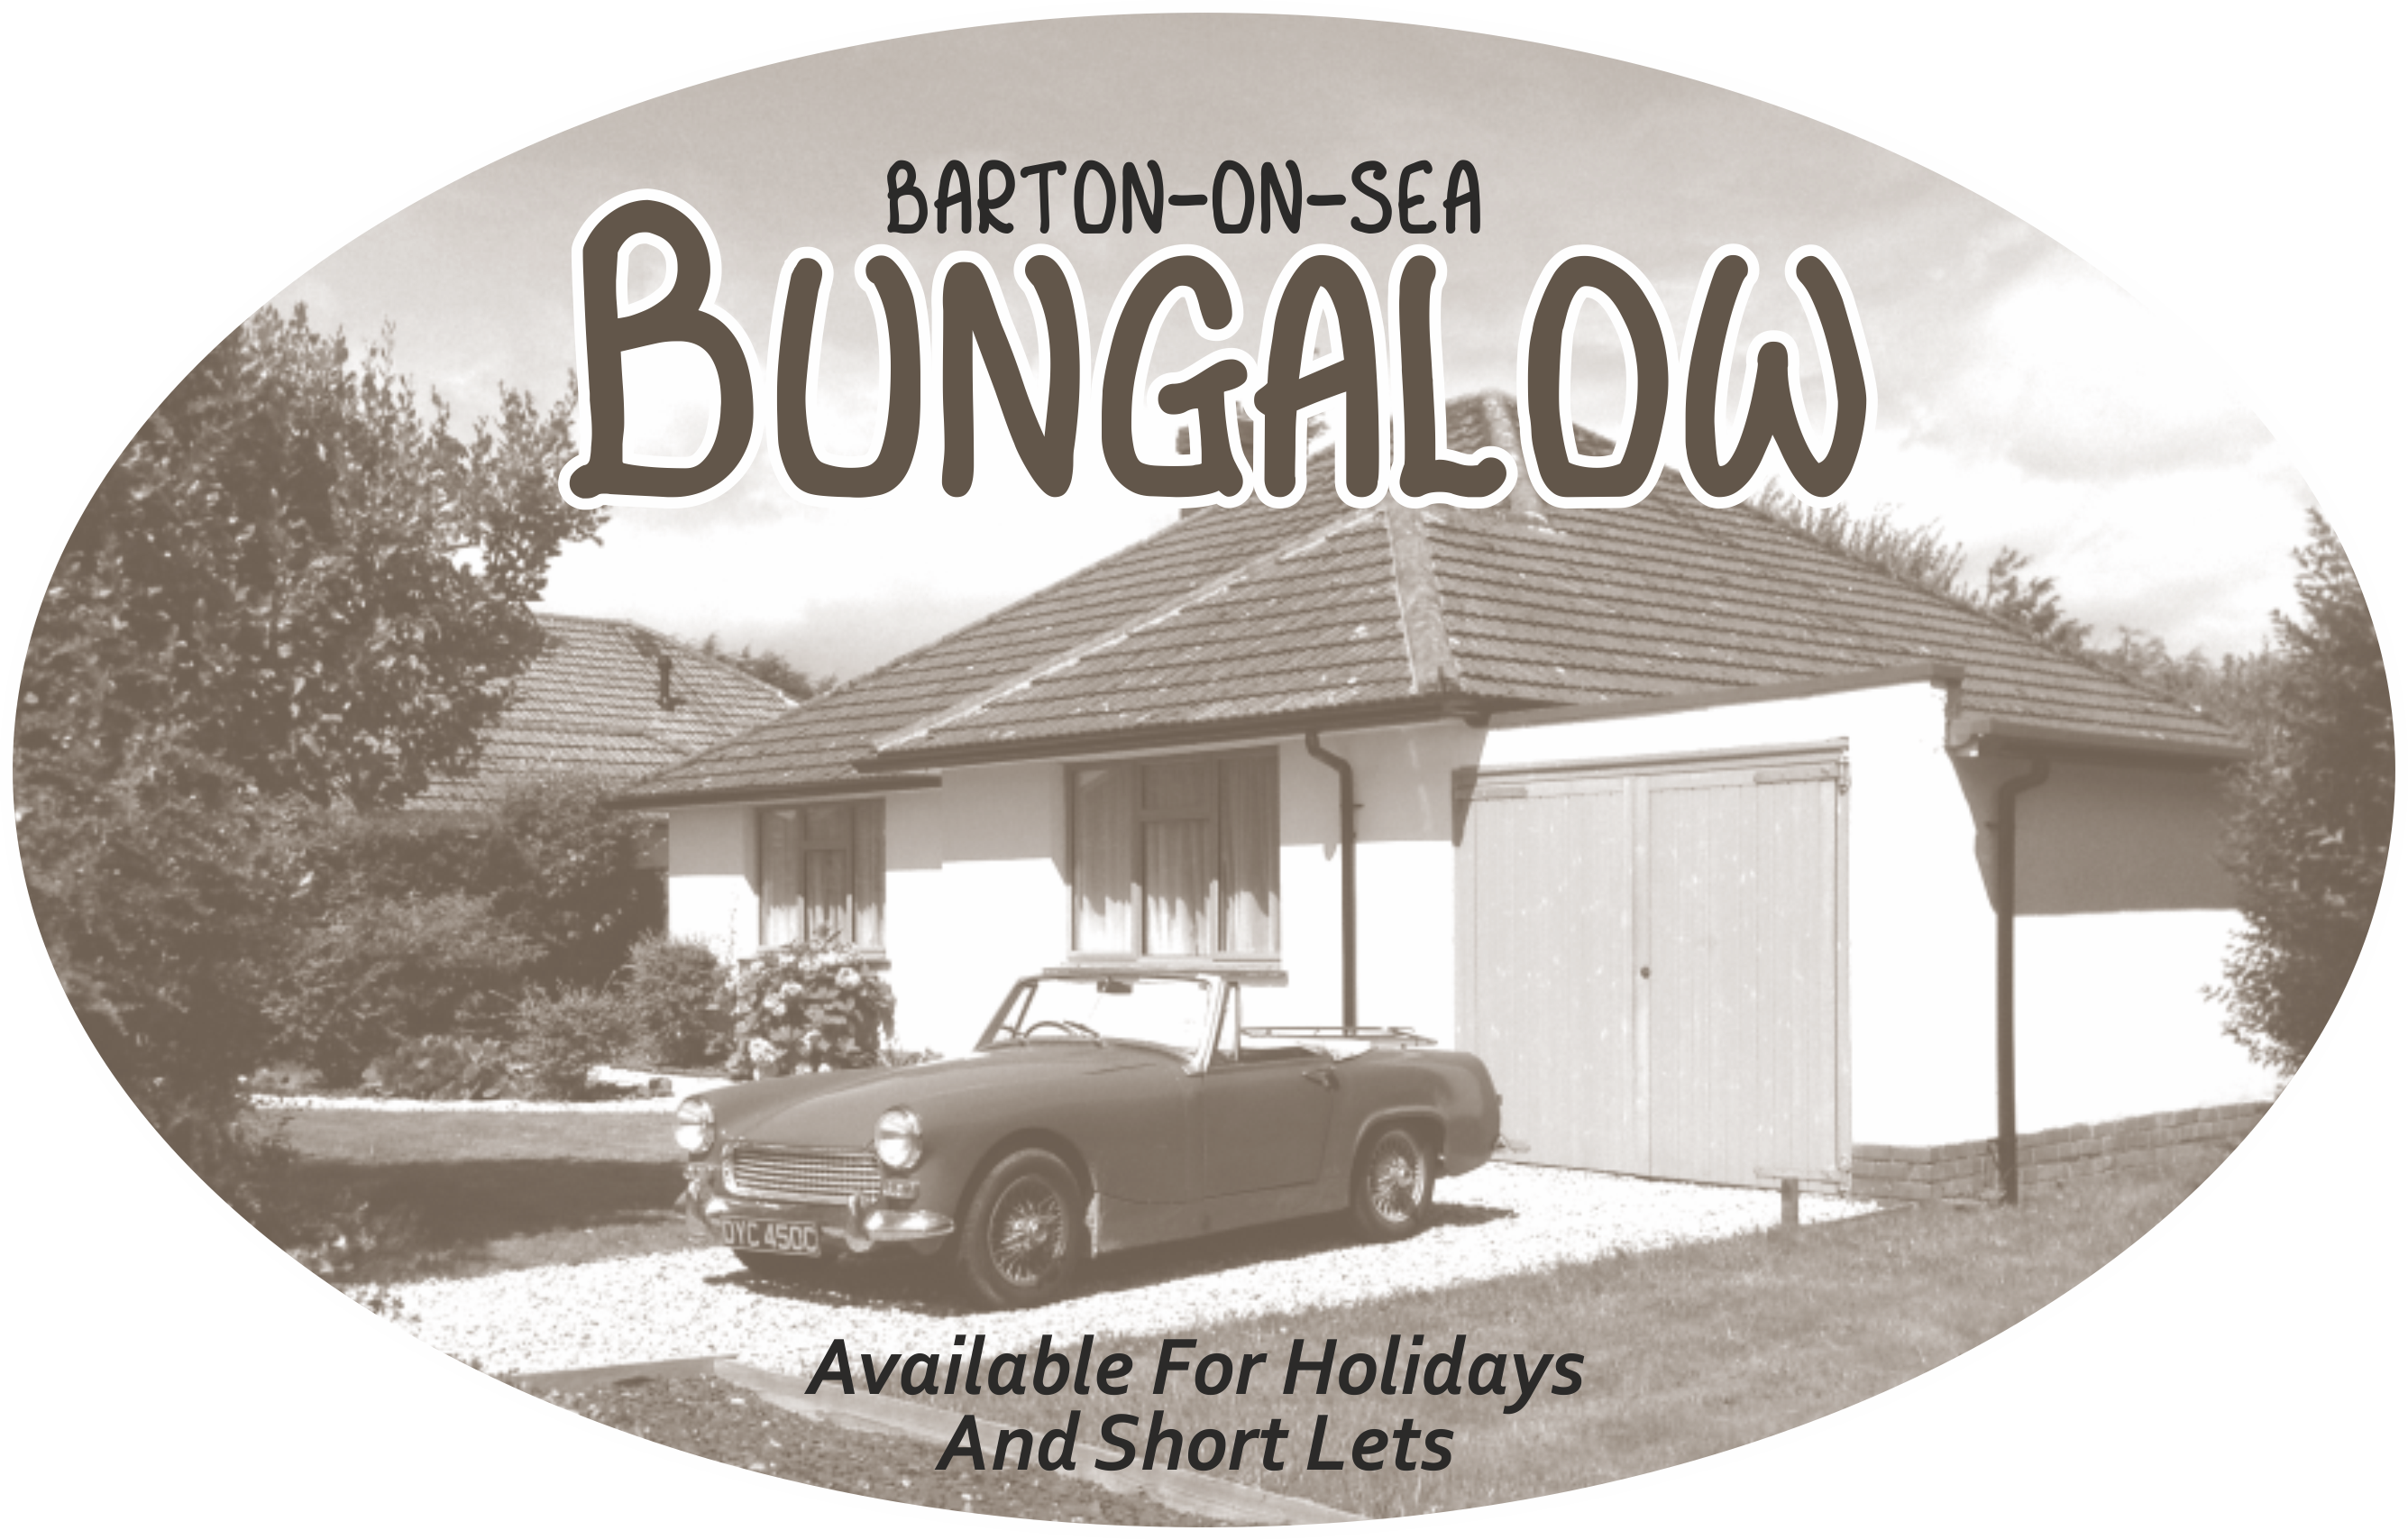 barton on sea bungalow